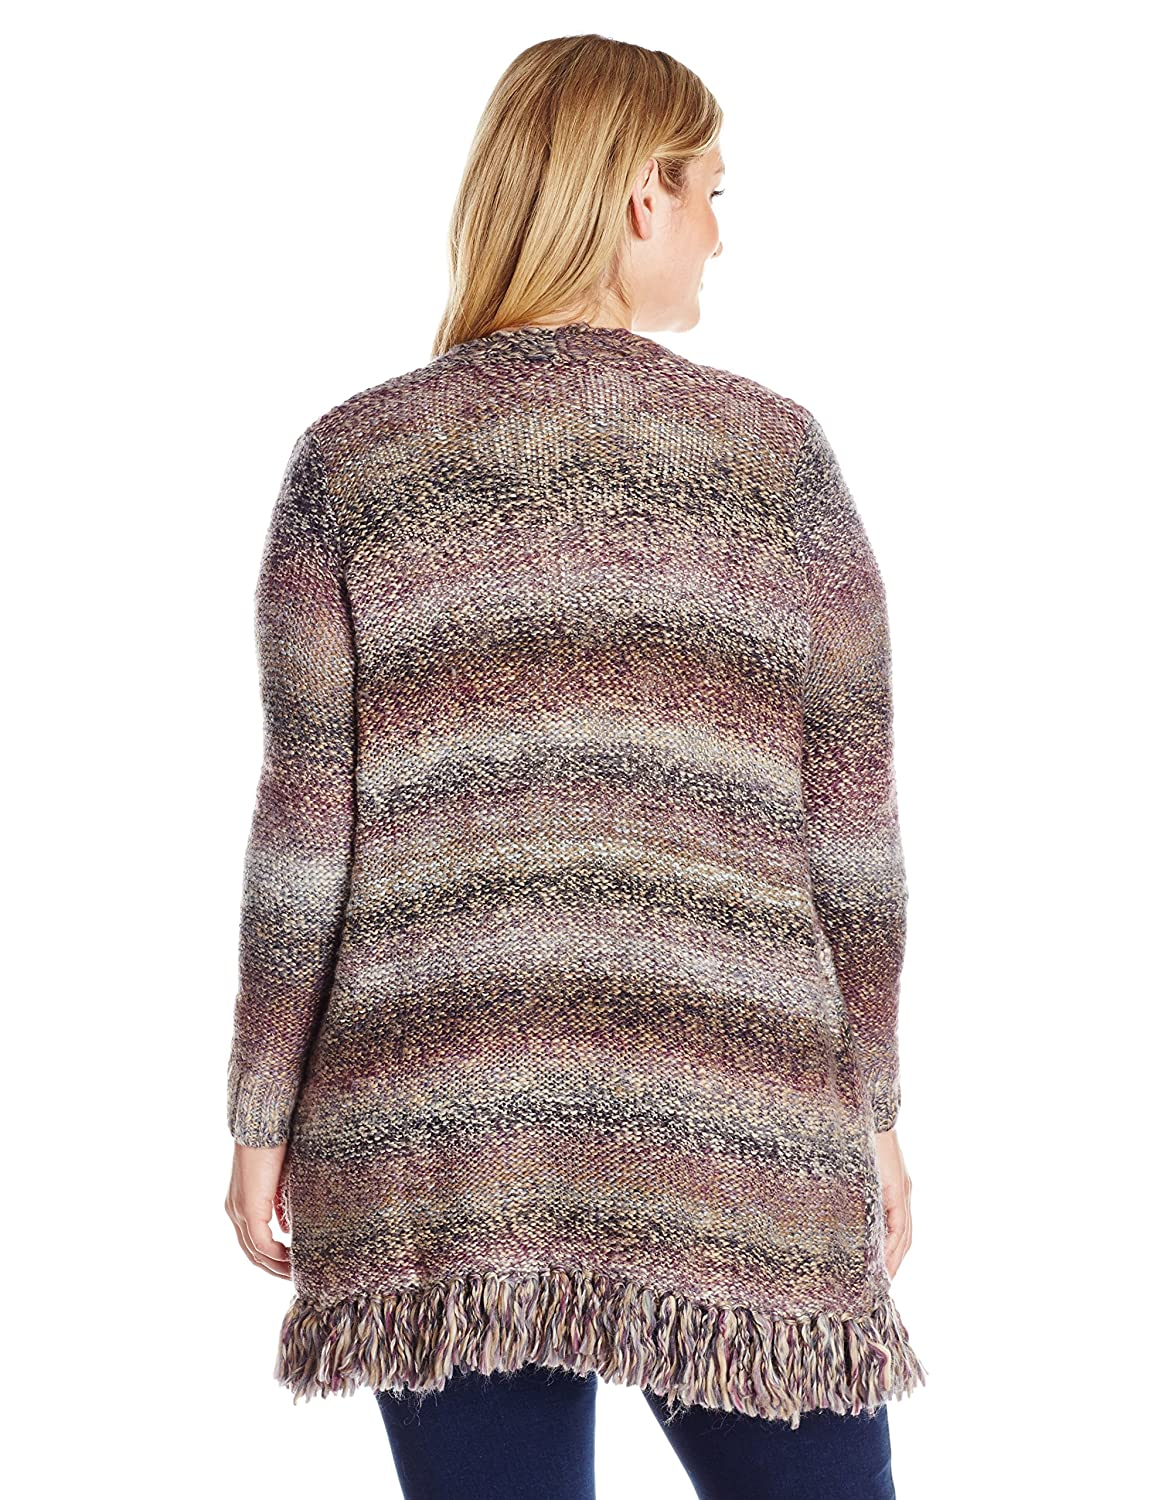 Lucky Brand Women's Plus Size Fringe Cardigan Sweater